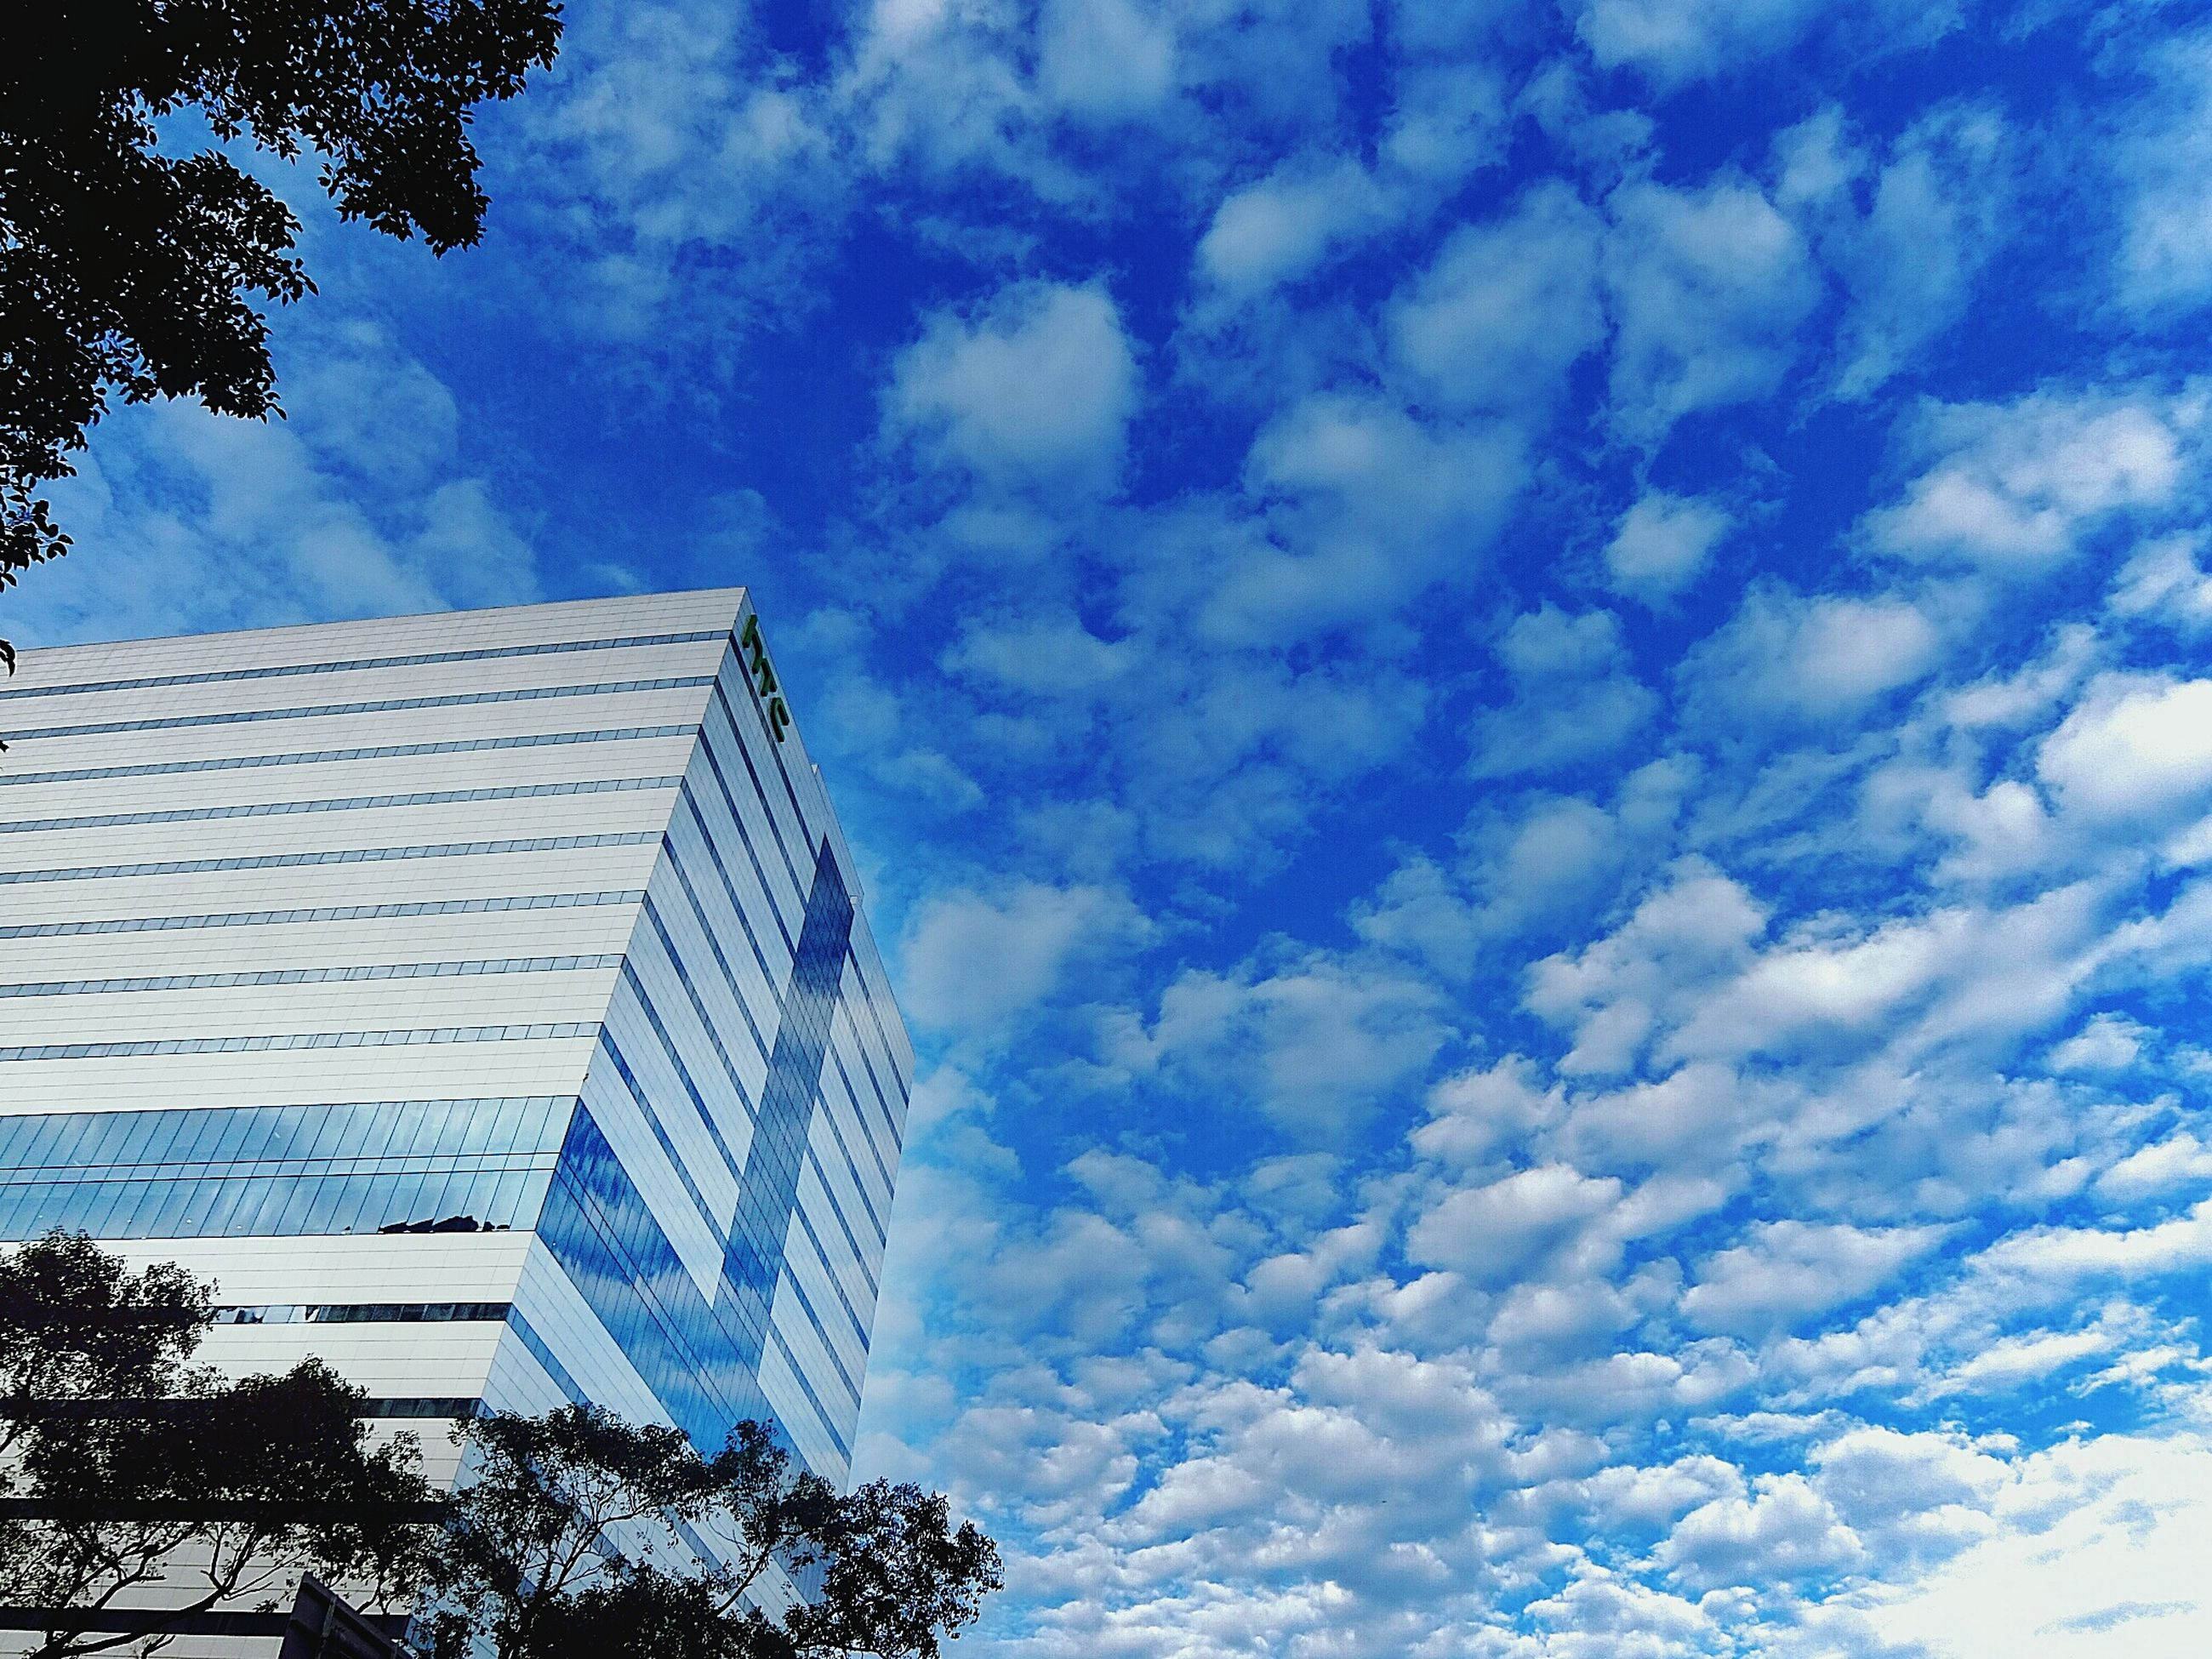 sky, low angle view, tree, blue, cloud, architecture, cloud - sky, building exterior, day, branch, growth, tall - high, outdoors, tall, cloudy, scenics, office building, beauty in nature, skyscraper, modern, majestic, high section, tranquil scene, no people, tranquility, treetop